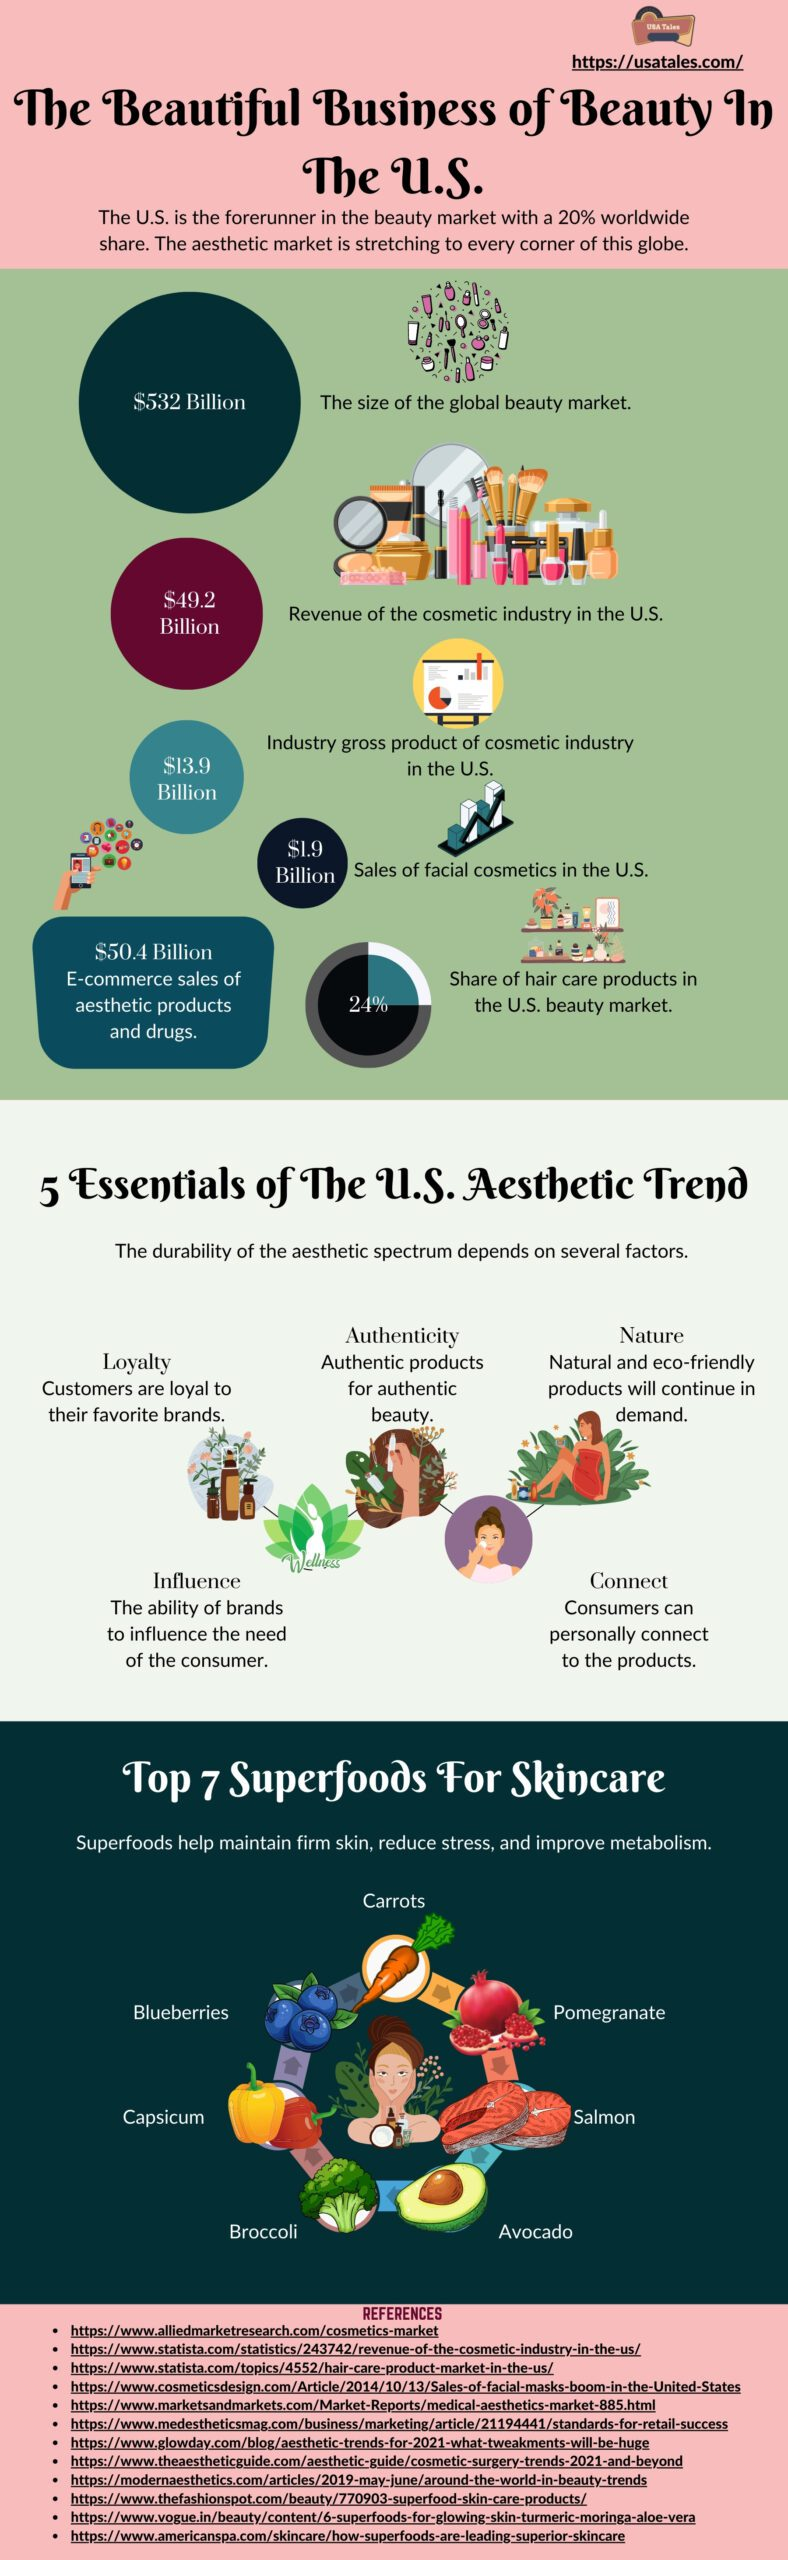 The Beautiful Business of Beauty In The U.S.